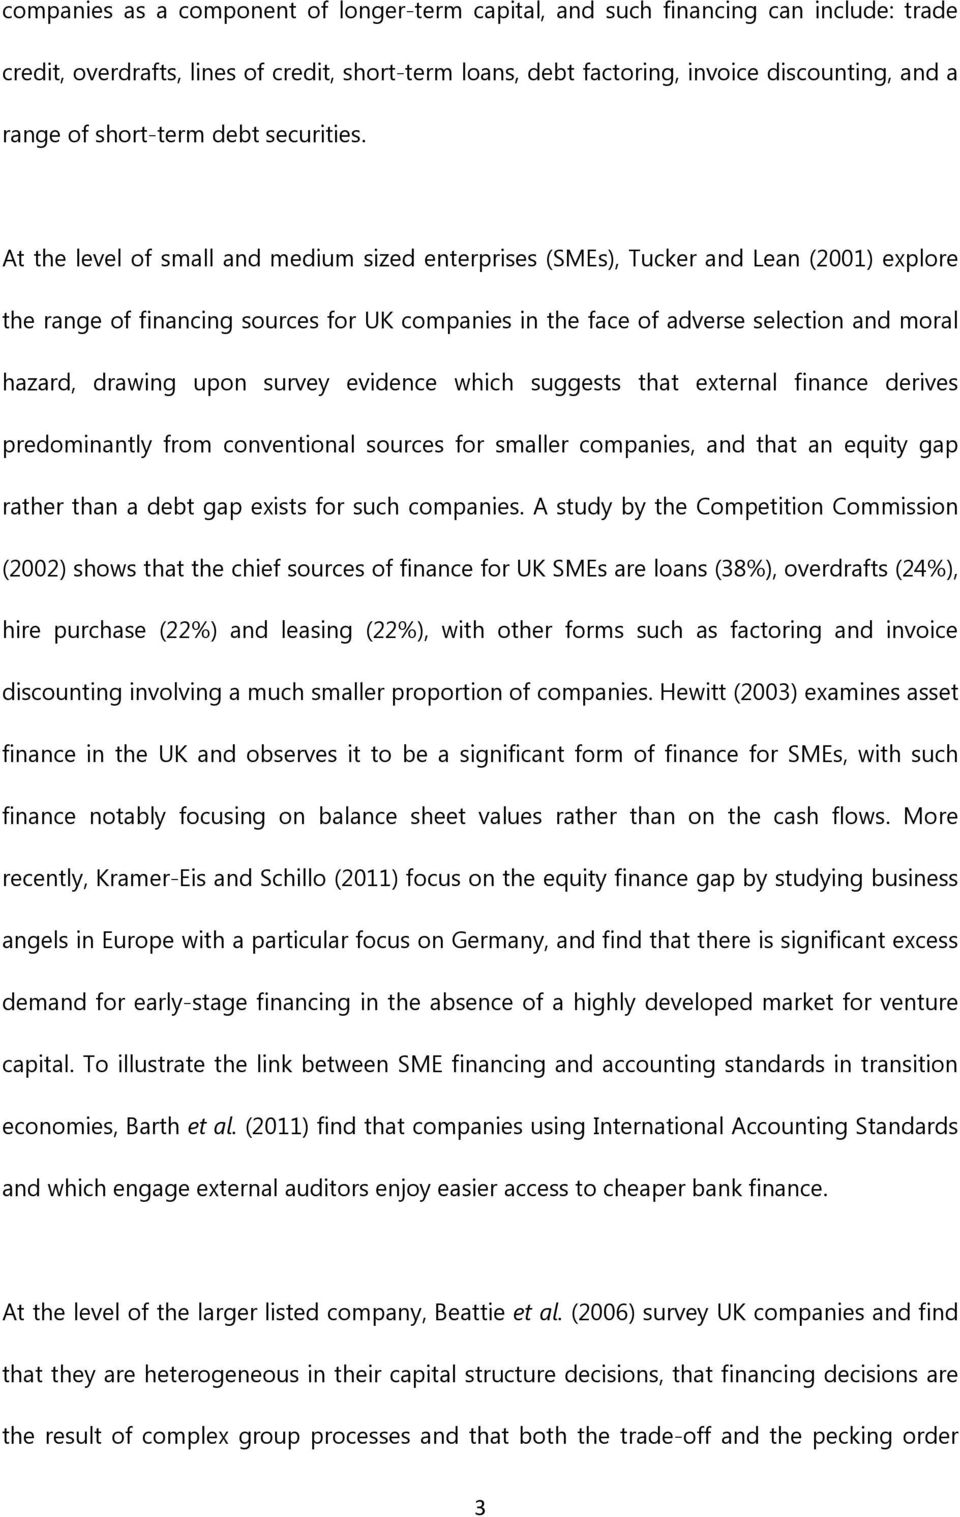 At the level of small and medium sized enterprises (SMEs), Tucker and Lean (2001) explore the range of financing sources for UK companies in the face of adverse selection and moral hazard, drawing